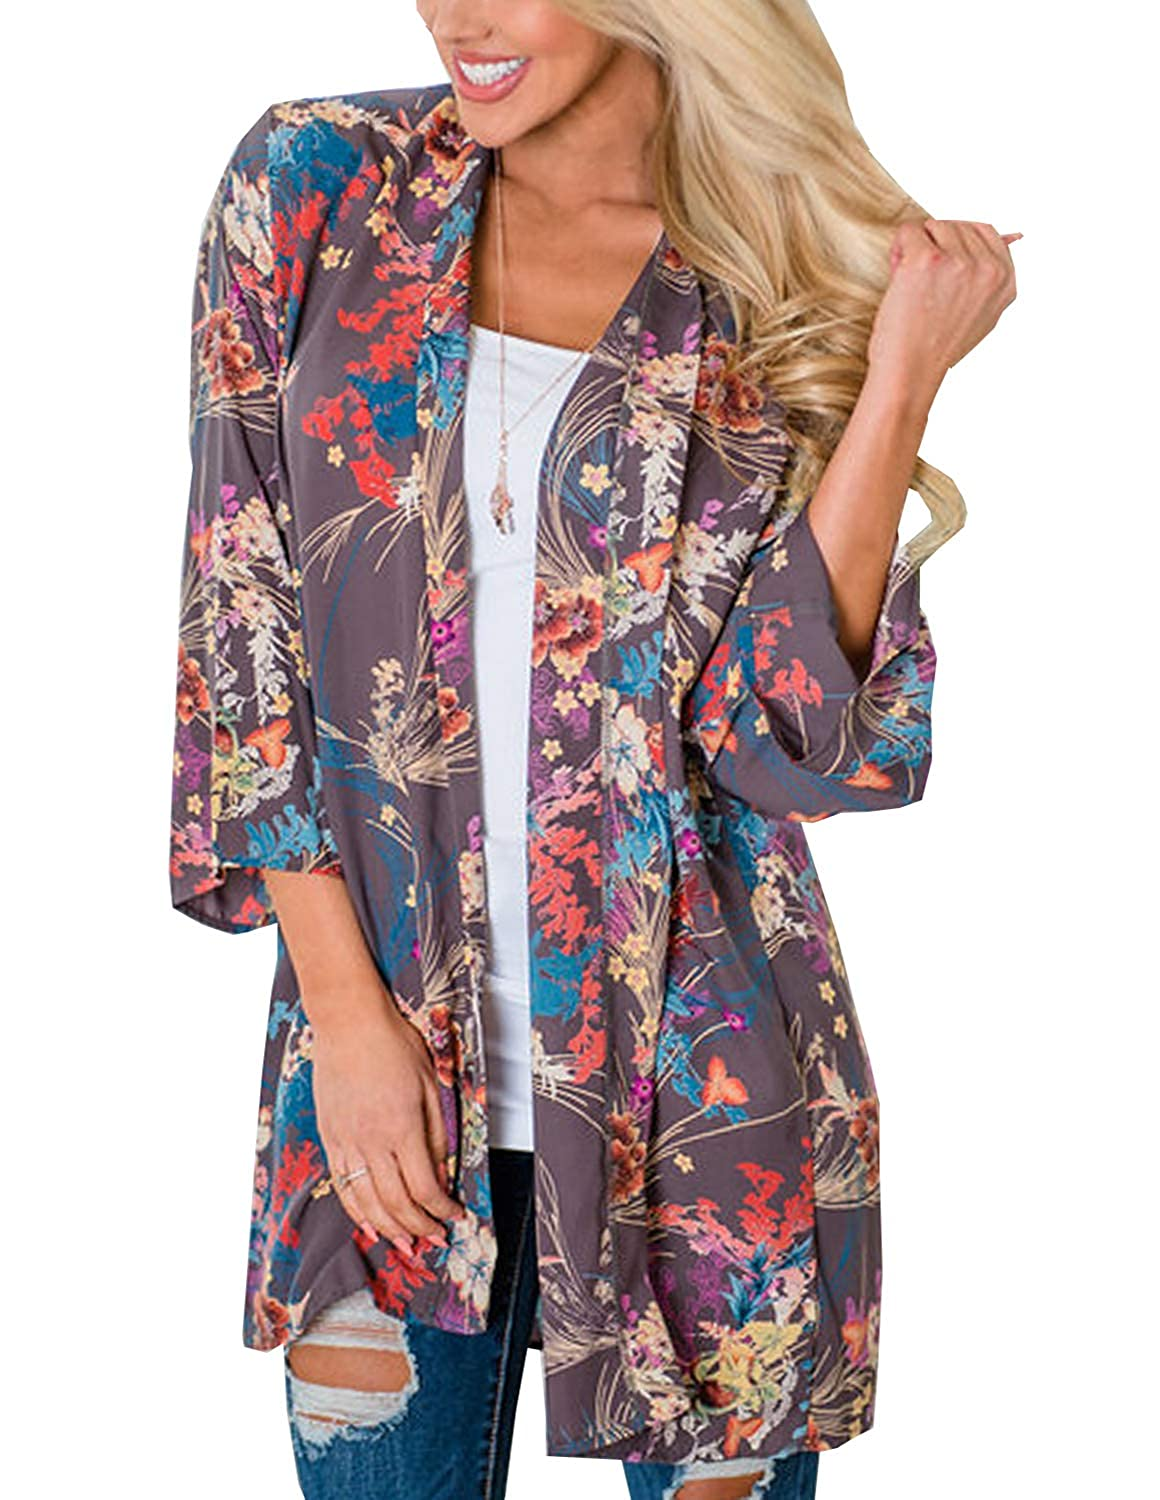 76499e4b260a3 FEATURES: Casual fashion floral printing cardigan. 3/4 Sleeve, open front  style, softness and fit, Airy material ...